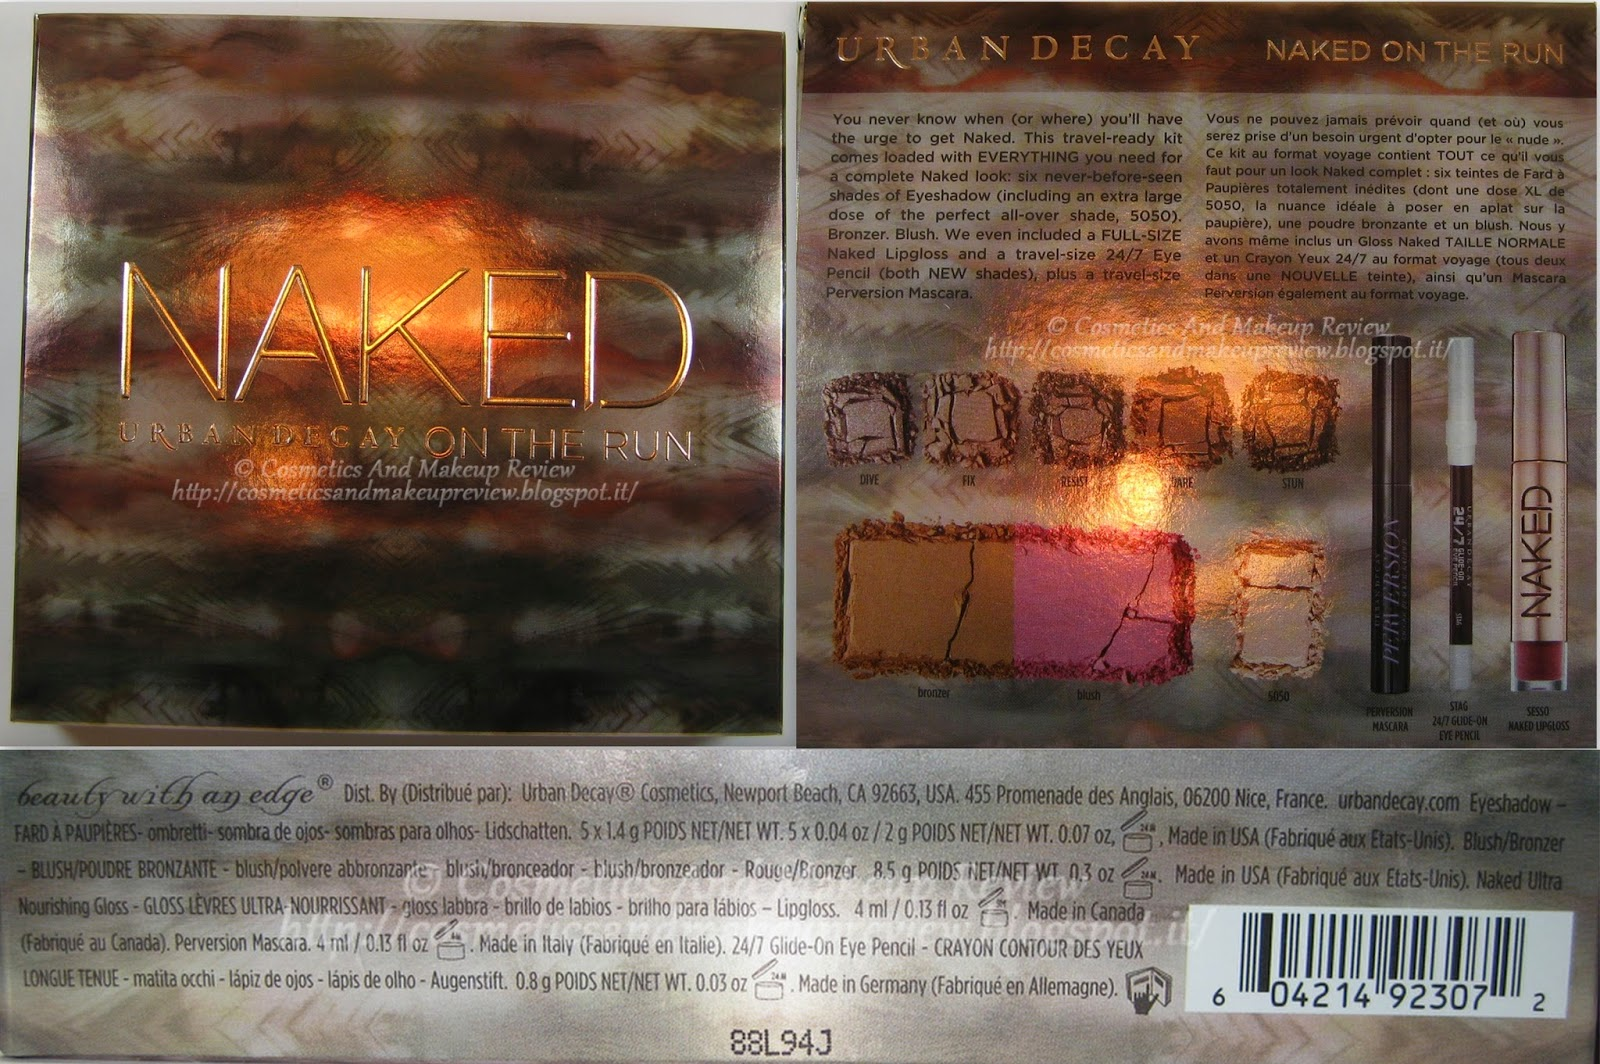 Urban Decay - Naked On The Run Palette - packaging